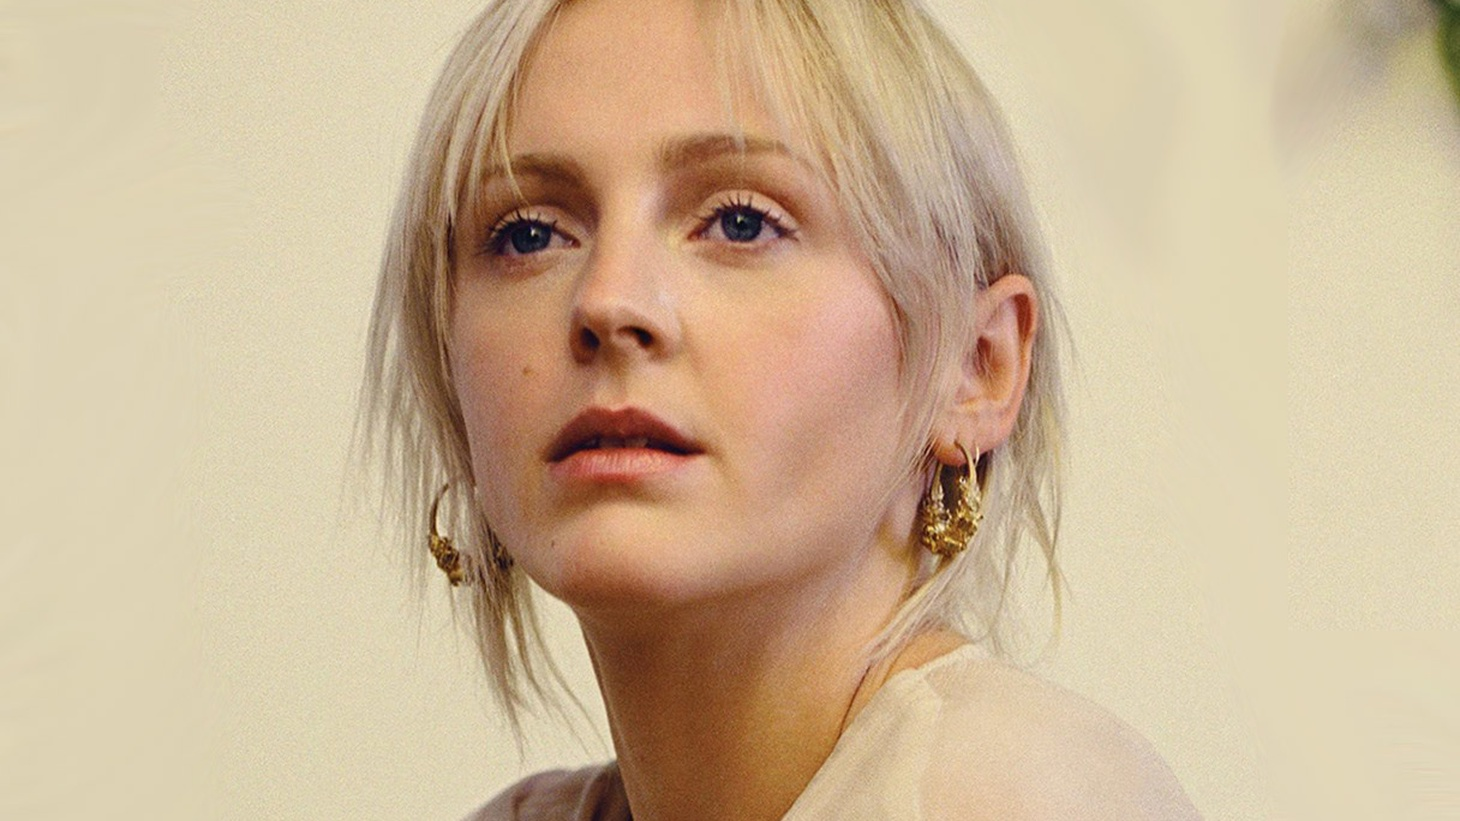 When we first heard Laura Marling's new album Semper Femina, we were floored by its beauty.